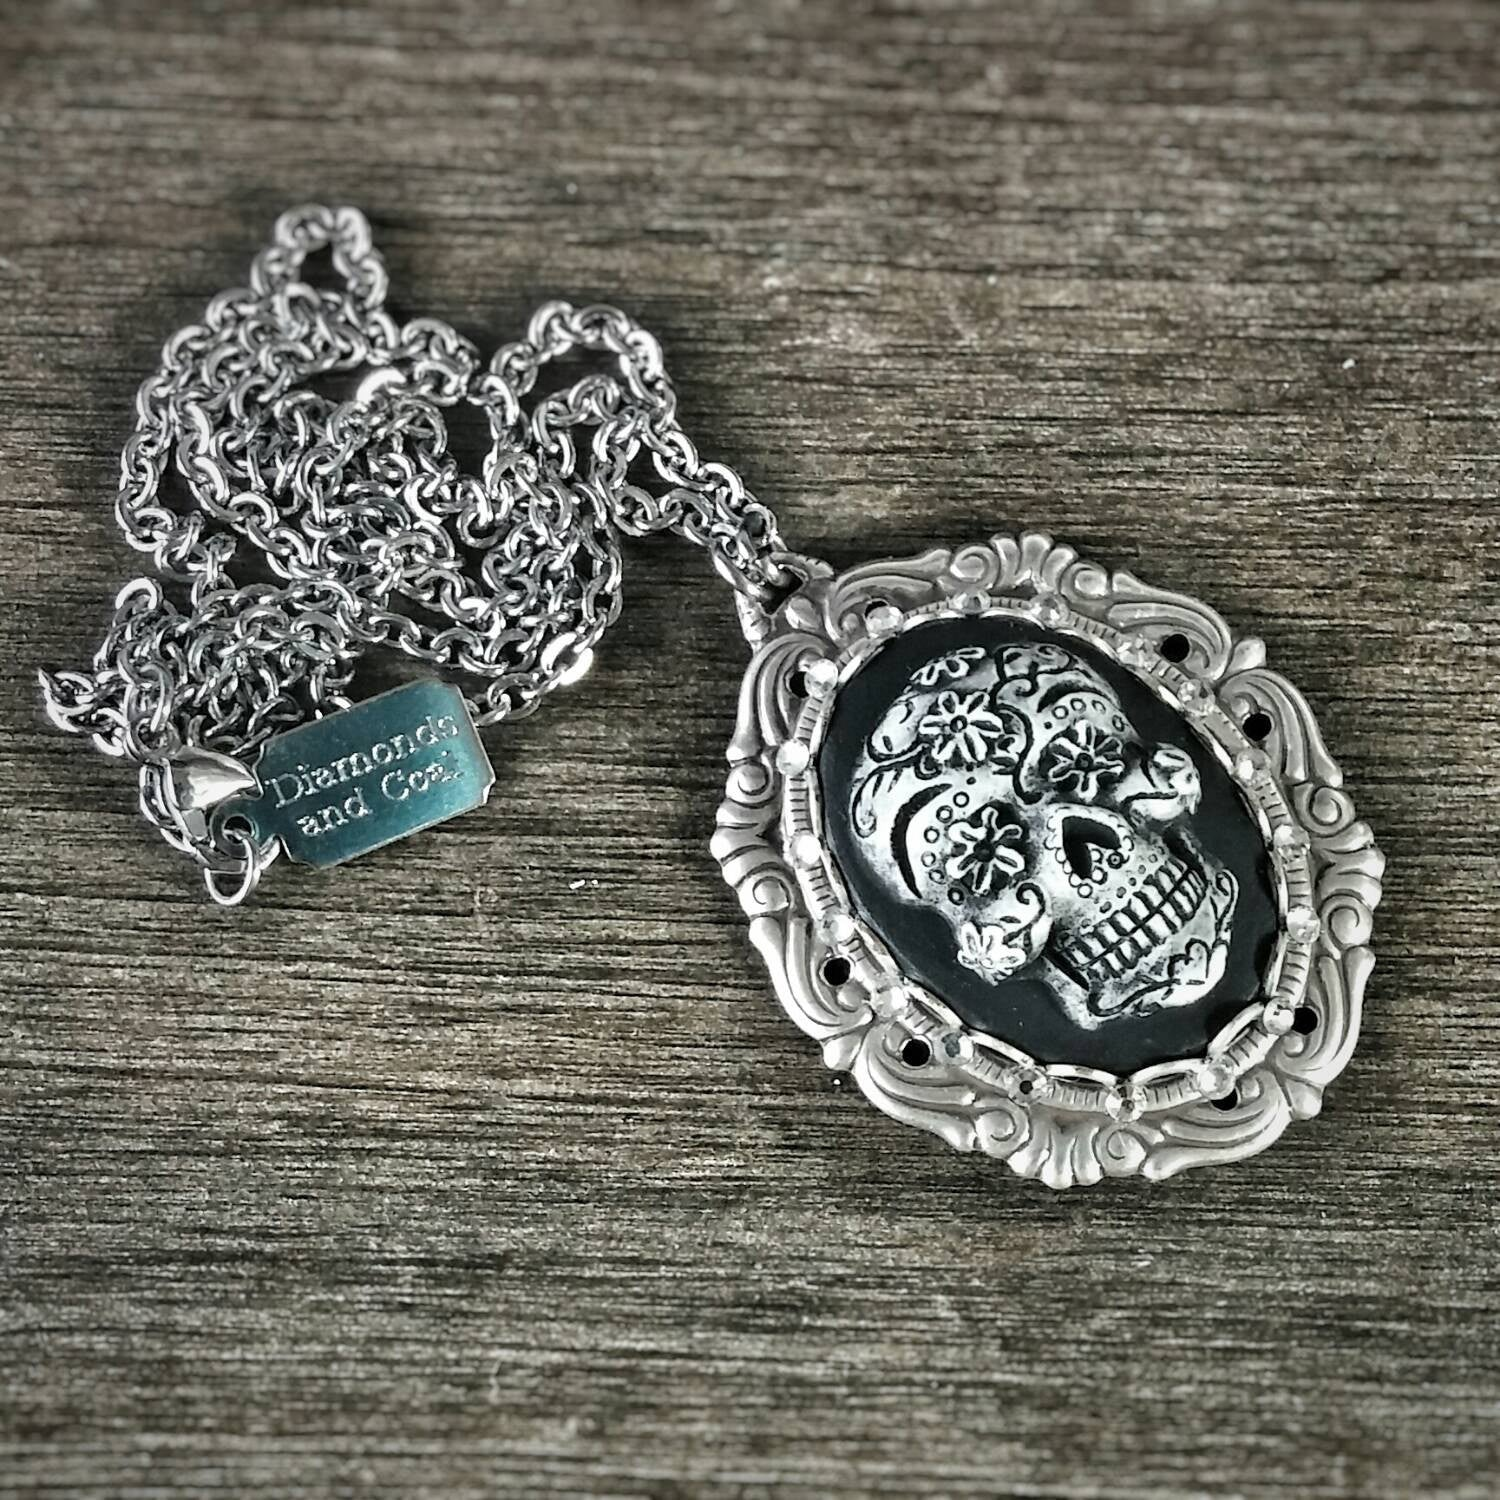 antique jewelry artbeads tierracast pendant silver charm supplies sa sugar skull